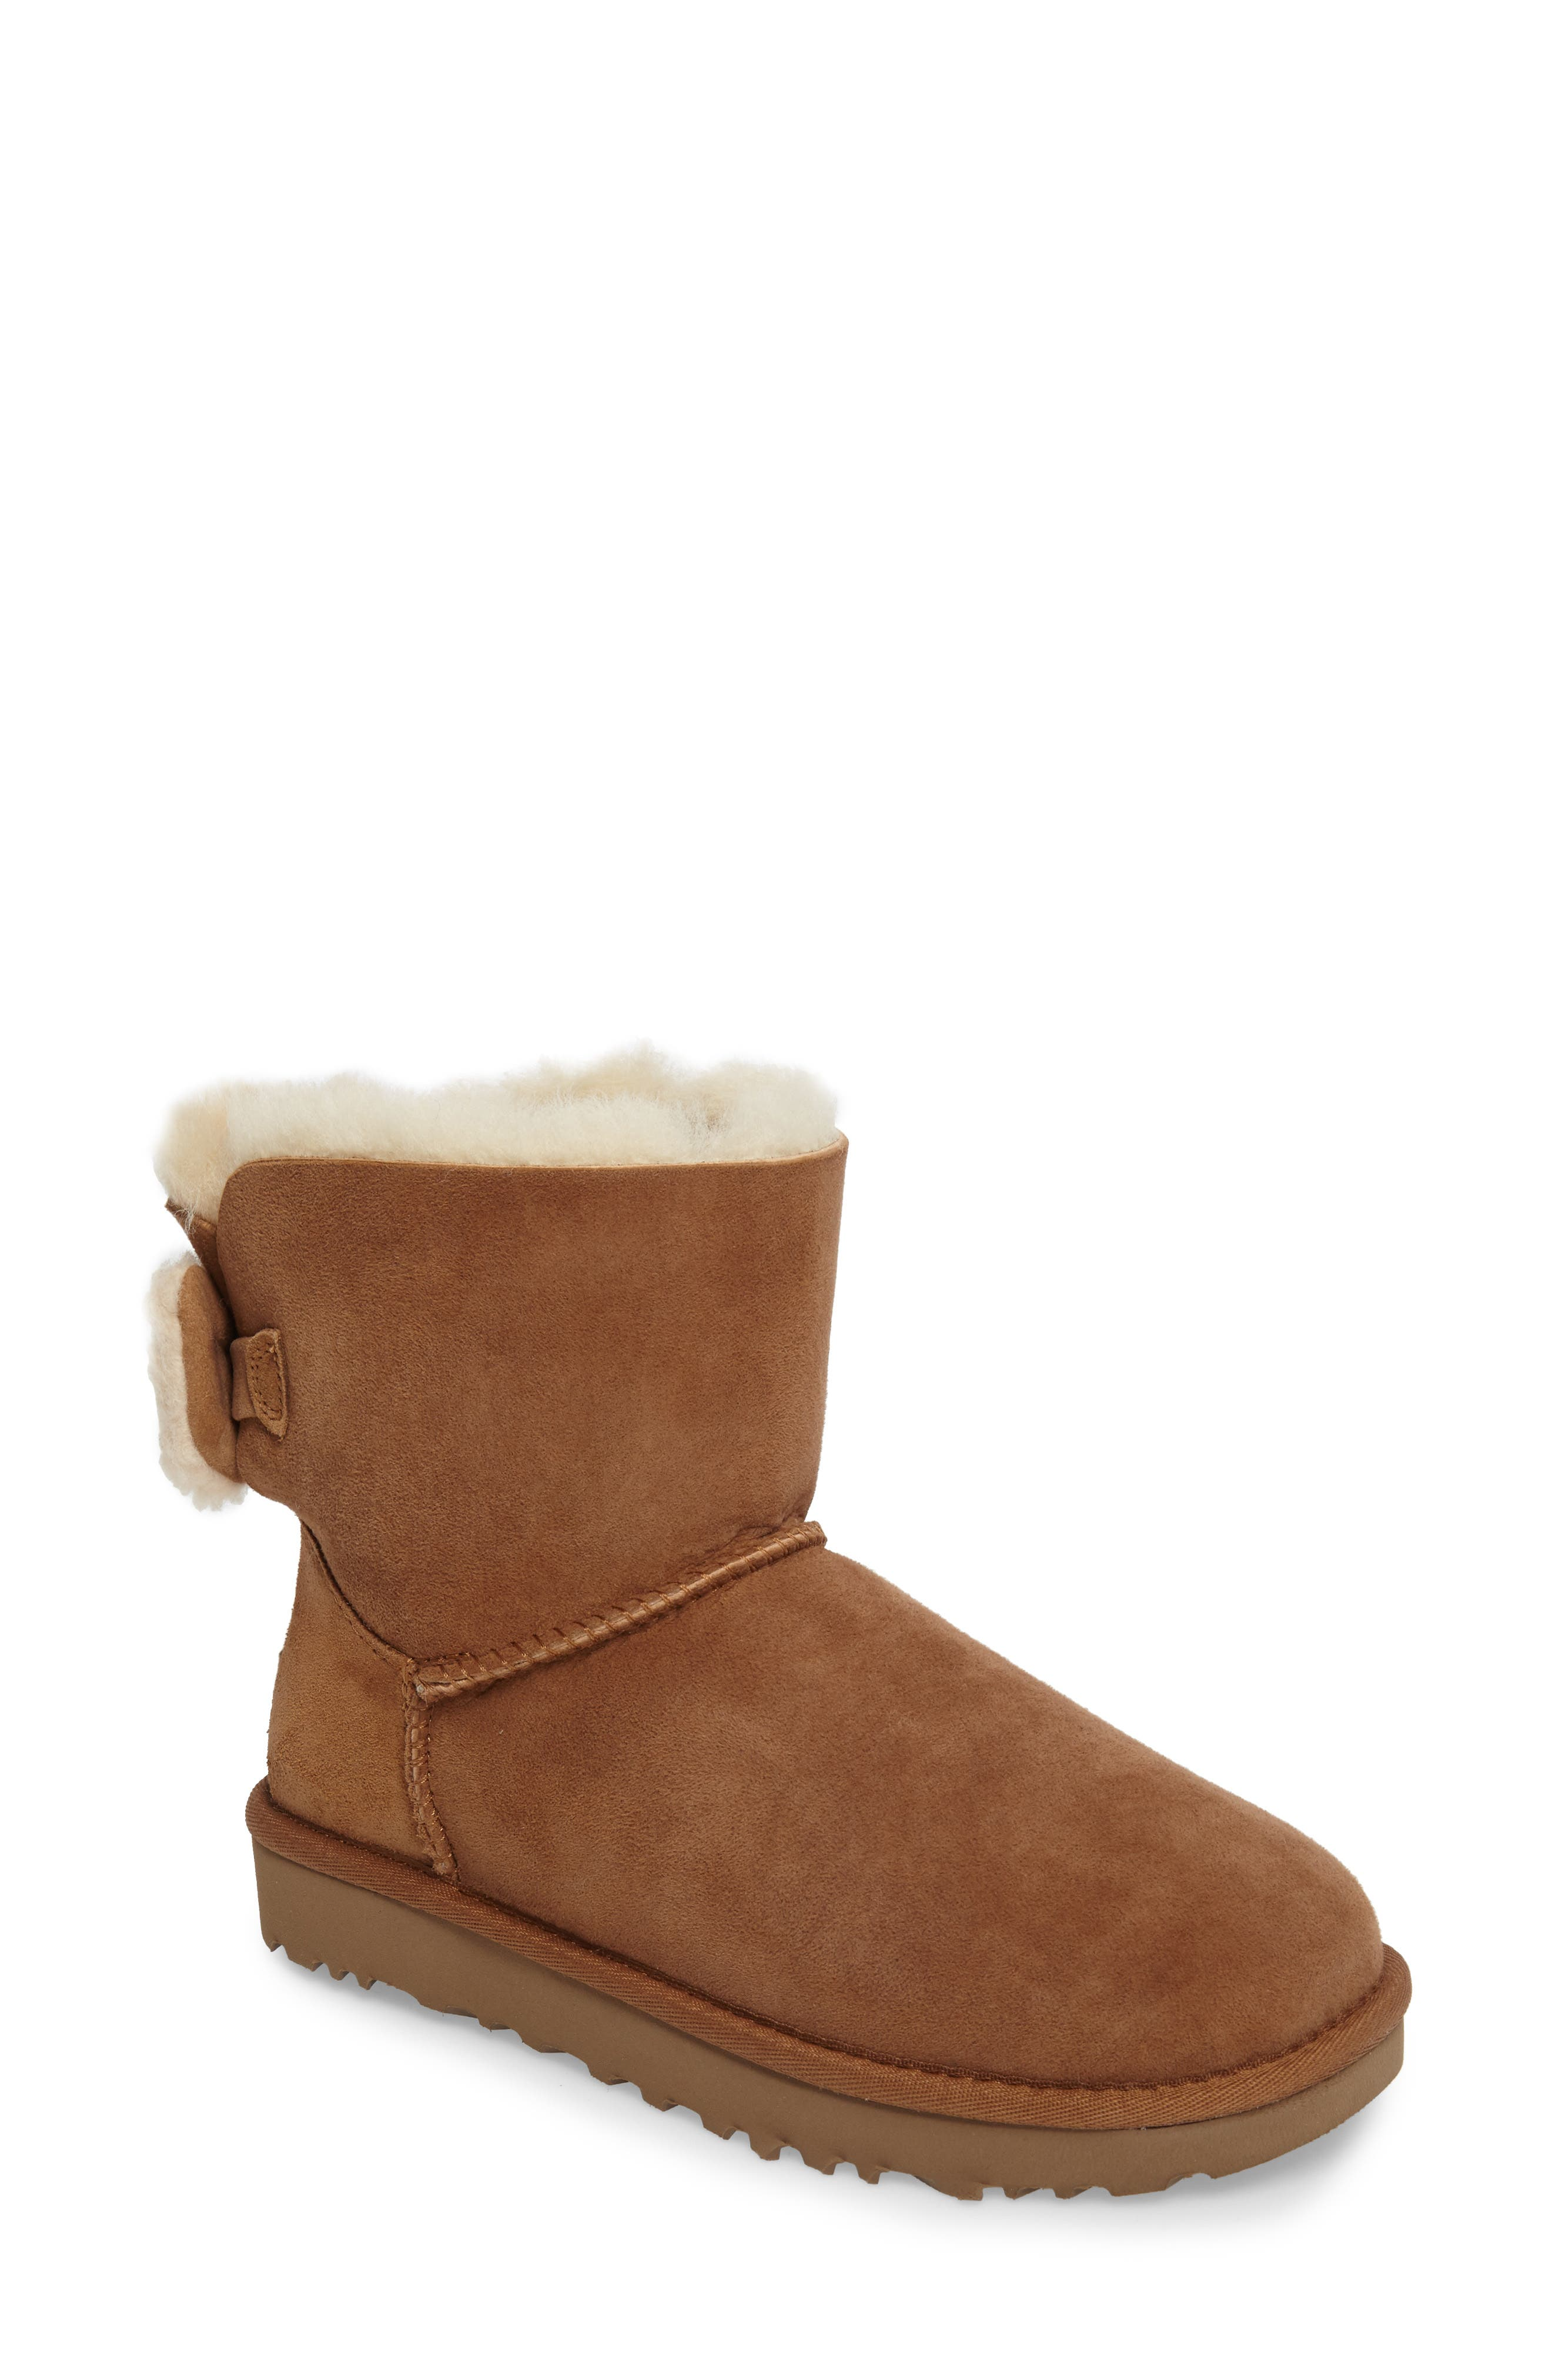 Alternate Image 1 Selected - UGG® Arielle Genuine Shearling Bootie (Women)